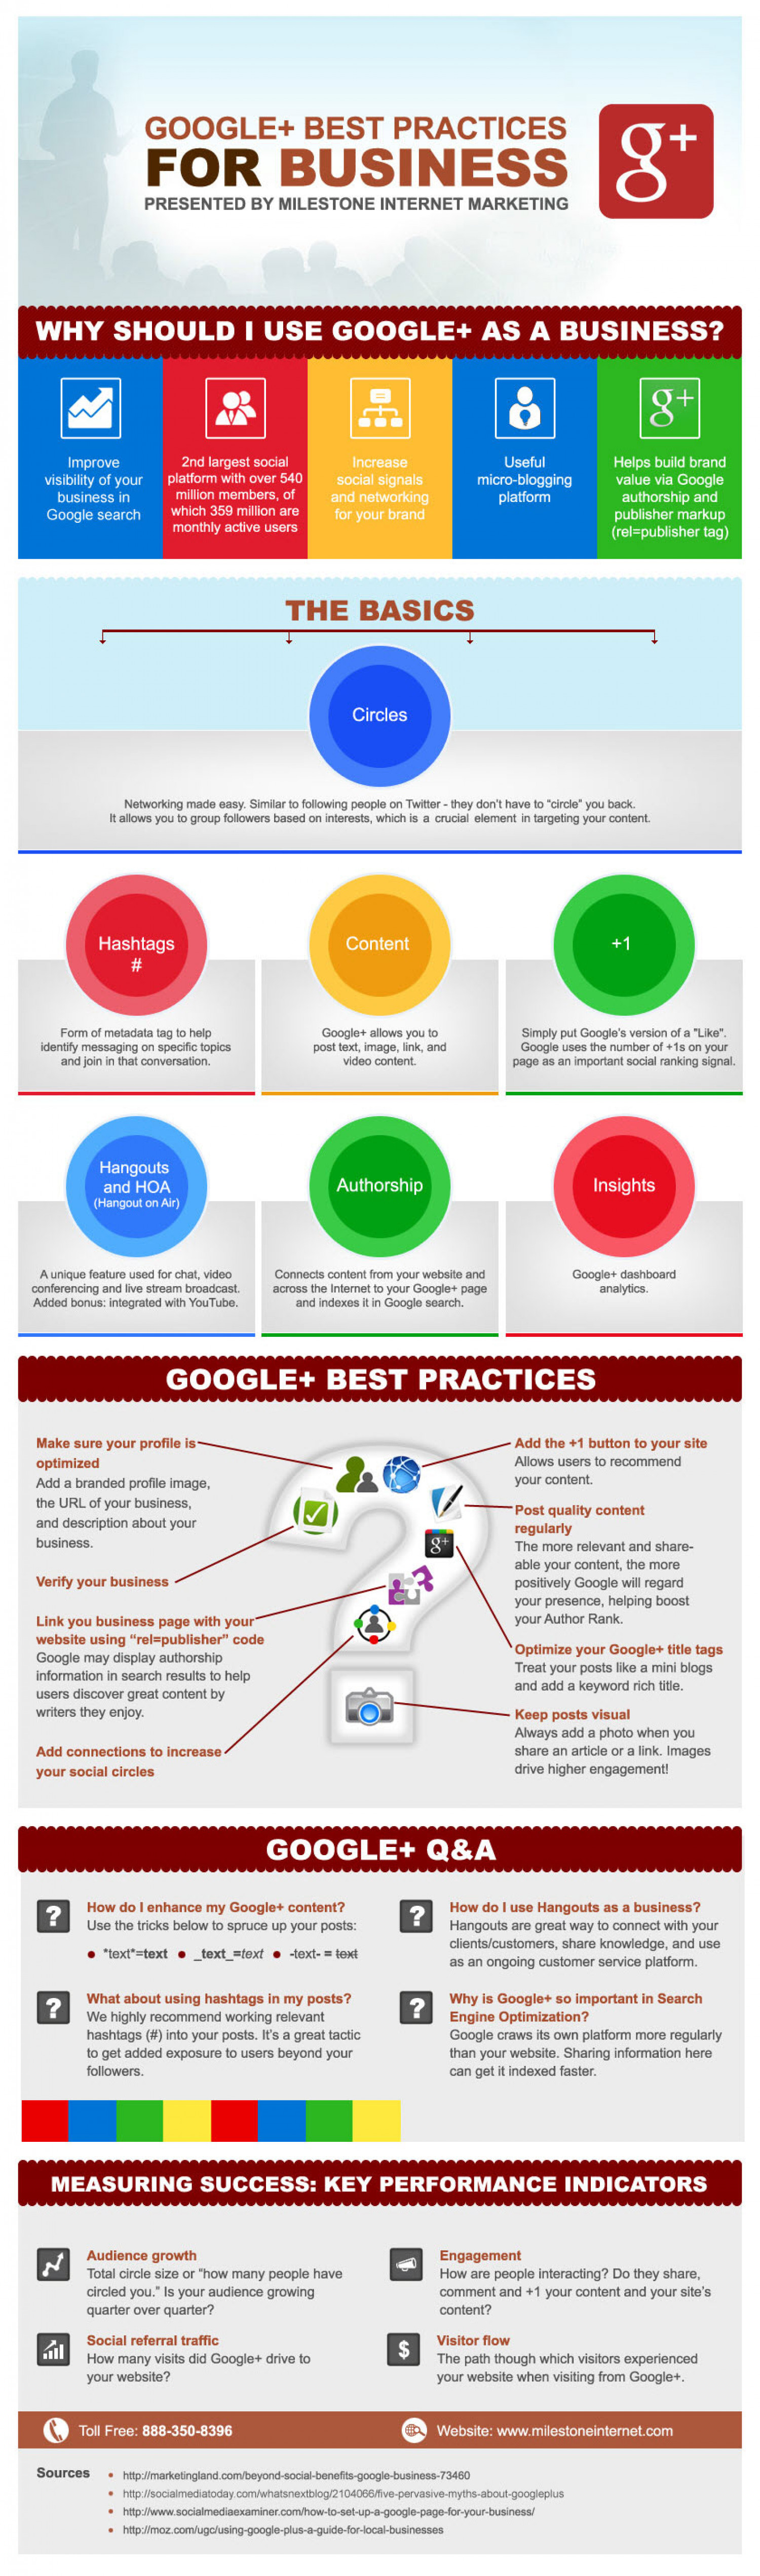 How to Use Google+ for Business Infographic